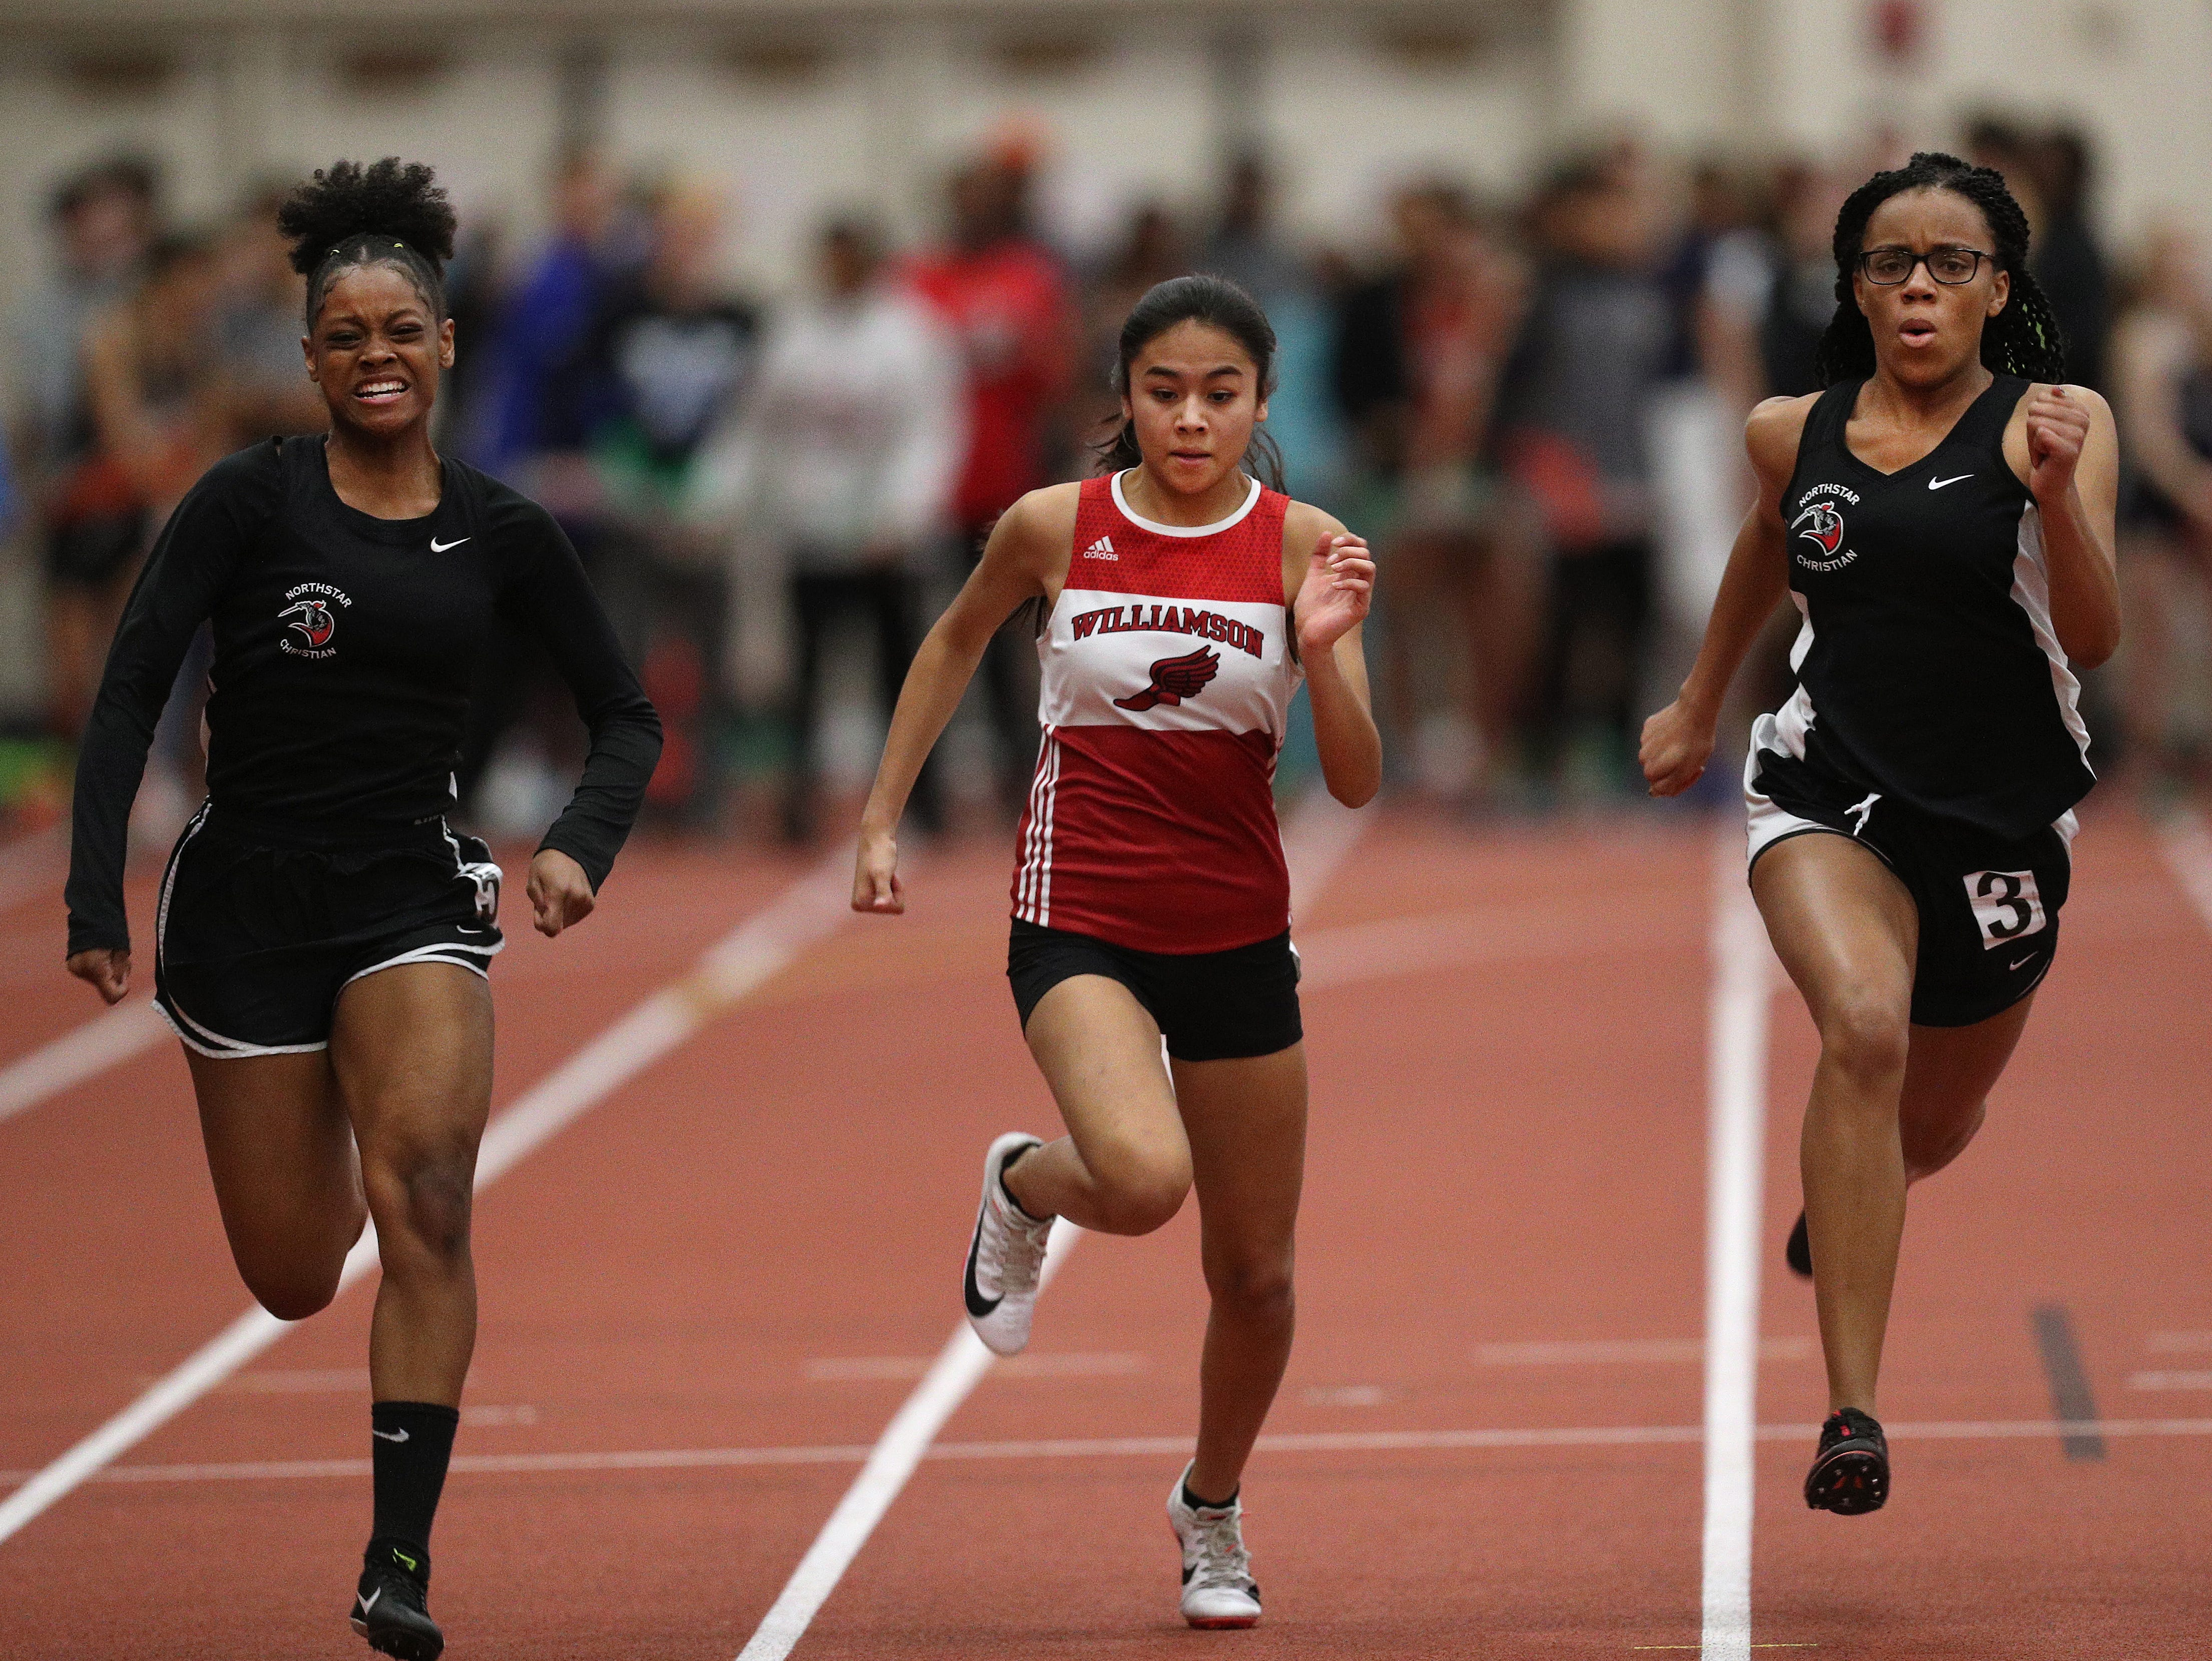 Northstar's Jasmine Smith (L) won the 55 meter dash ahead of Williamson's Andrea Hurtado and teammate Jaylon Rhone.